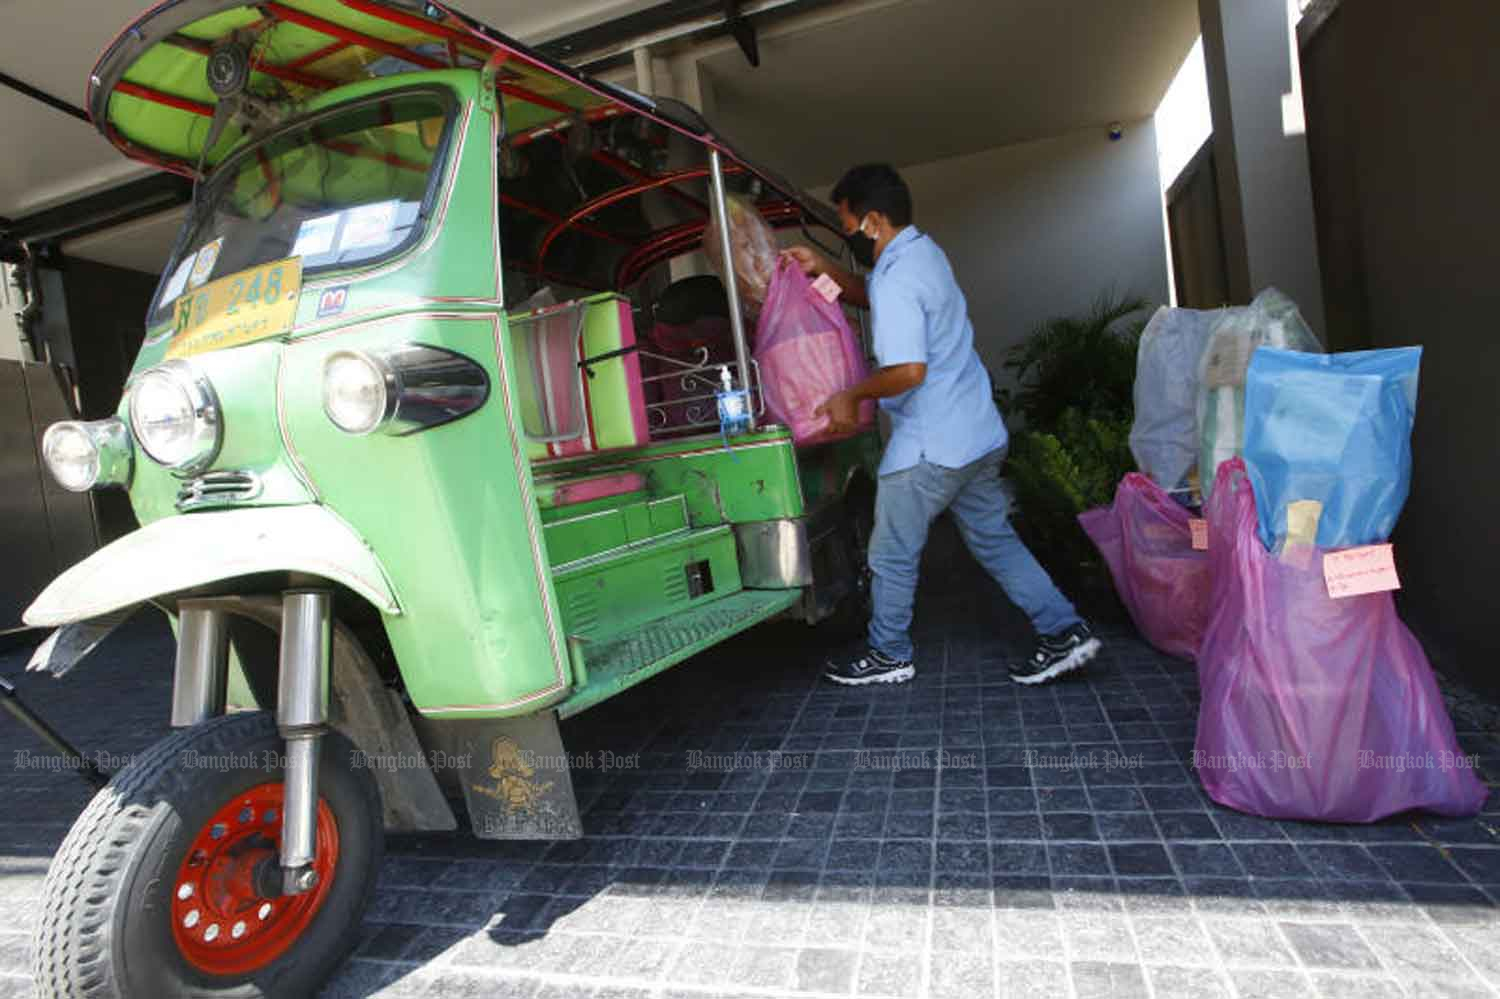 A tuk-tuk driver places goods in his vehicle for a delivery service which has replaced his old job, following a sharp drop in passenger numbers during the spread of Covid-19. Pornprom Satrabhaya